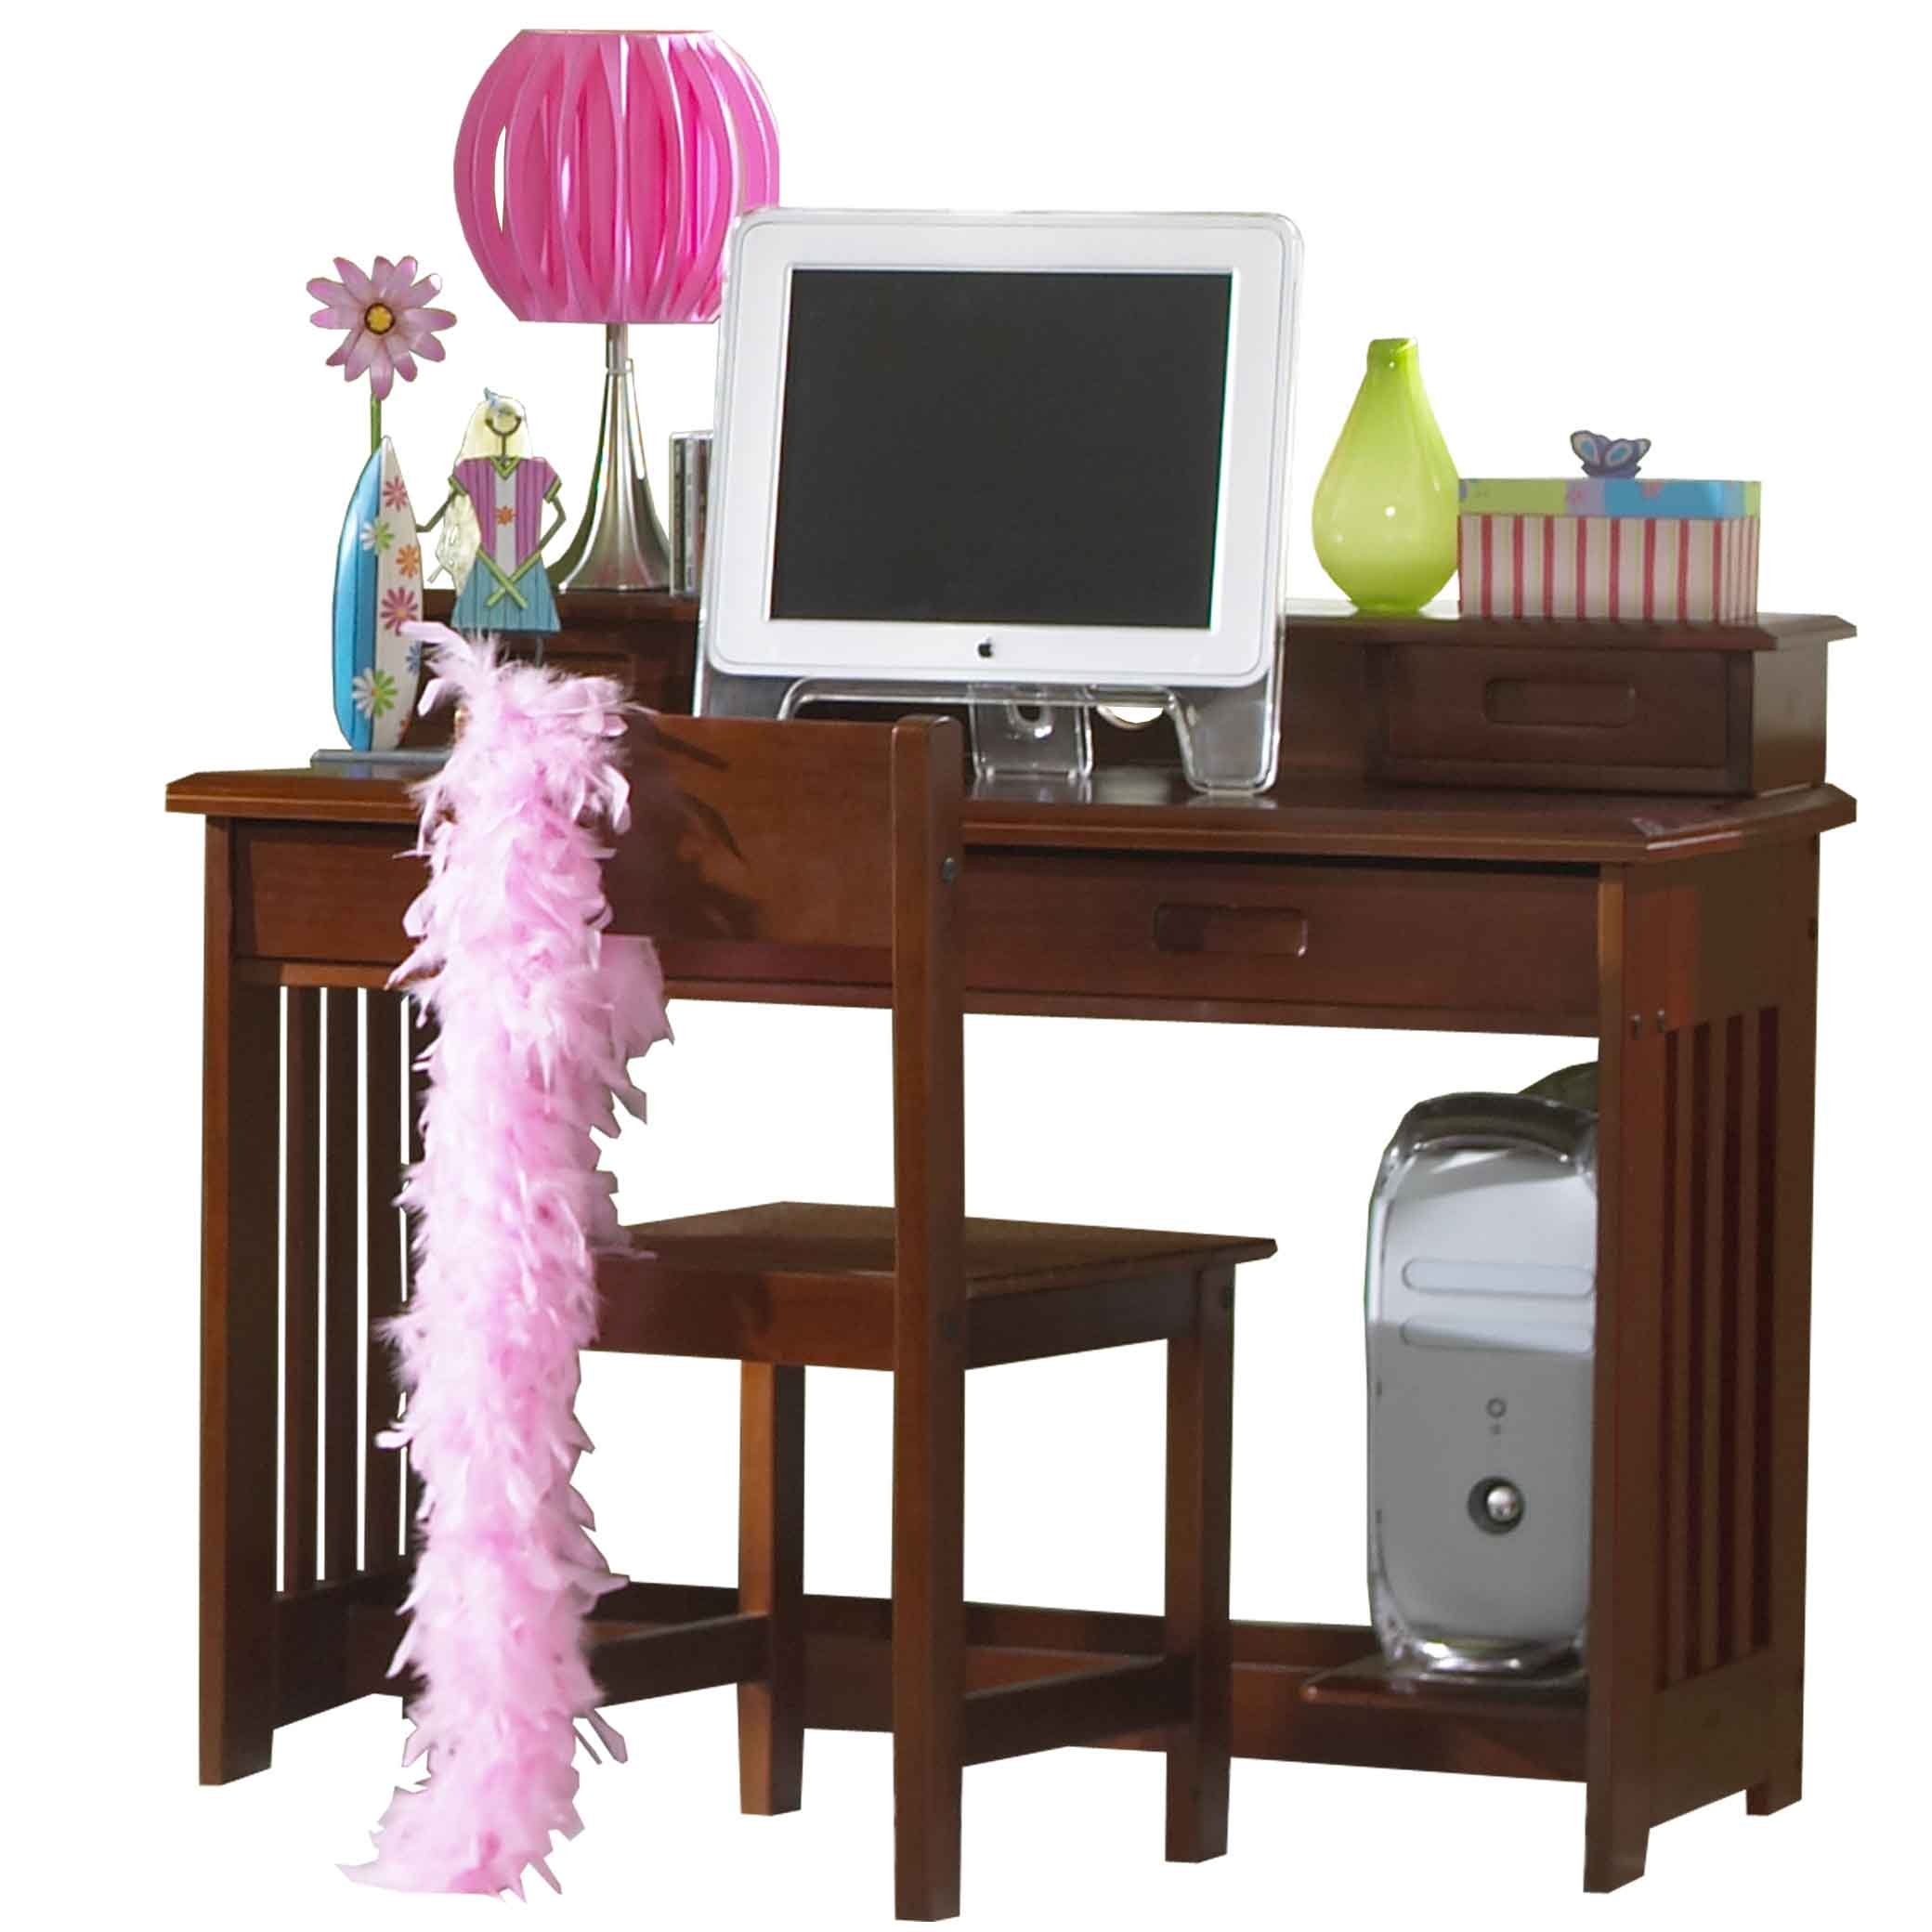 Discovery World Furniture Student Desk with Hutch and Chair, Merlot by Discovery World Furniture